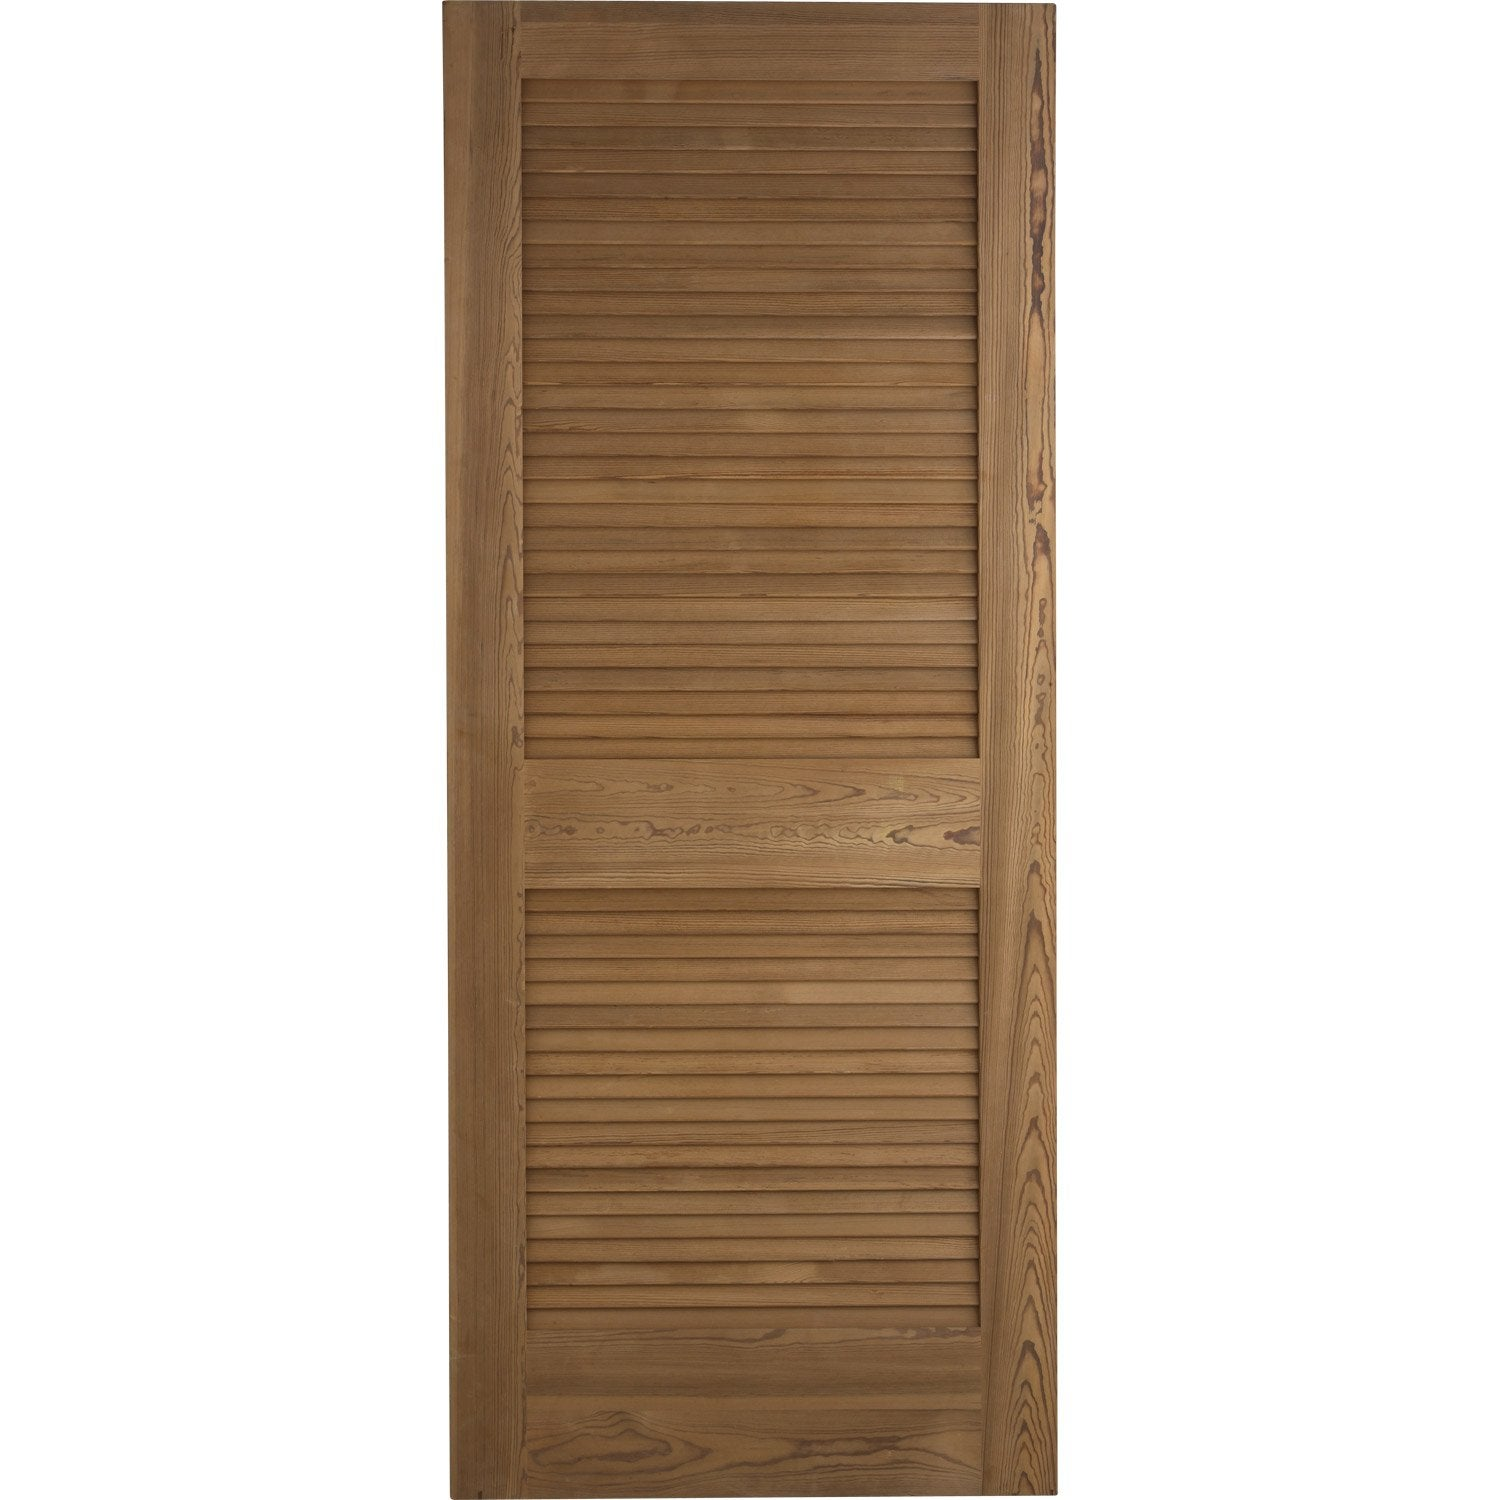 Porte coulissante pin plaqu marron java artens 204 x 73 - Leroy merlin porte coulissante sur mesure ...